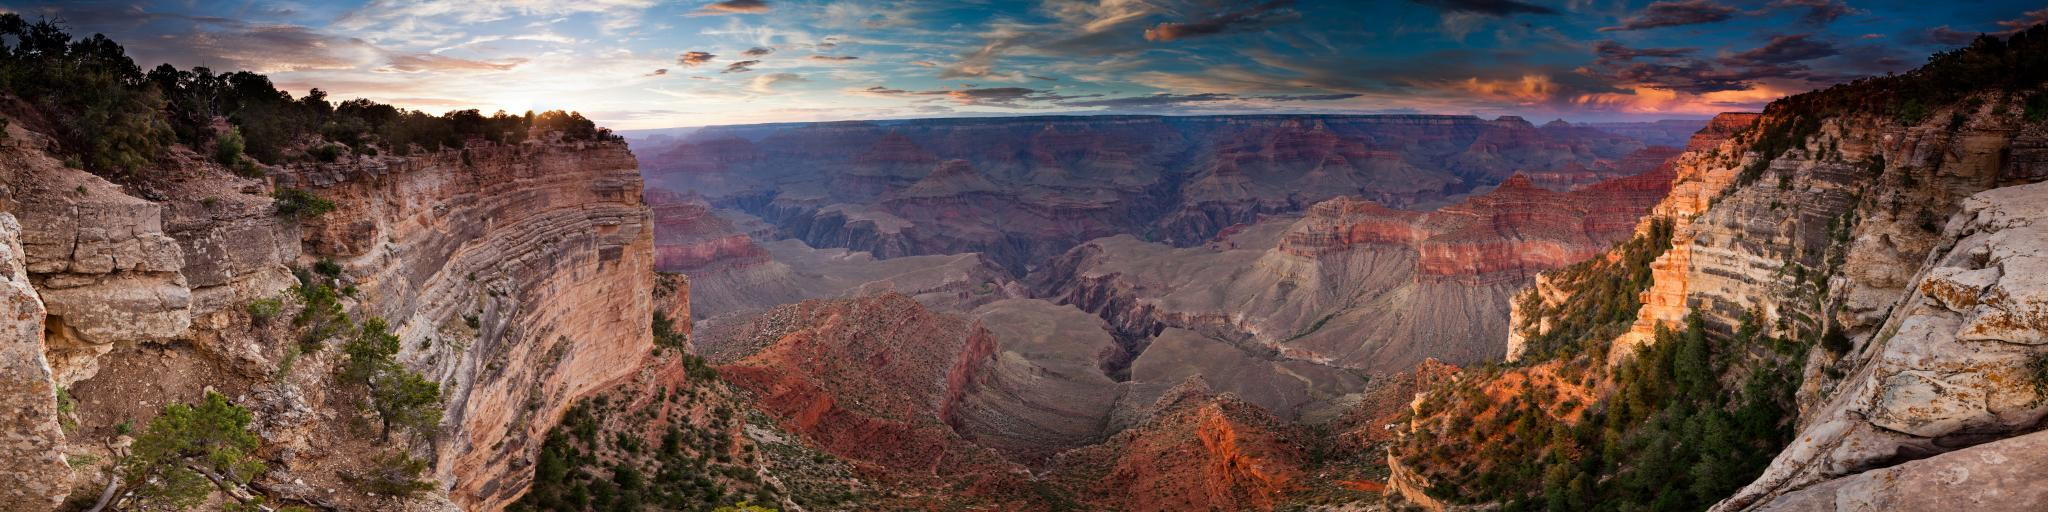 View  down into the Grand Canyon at sunset.